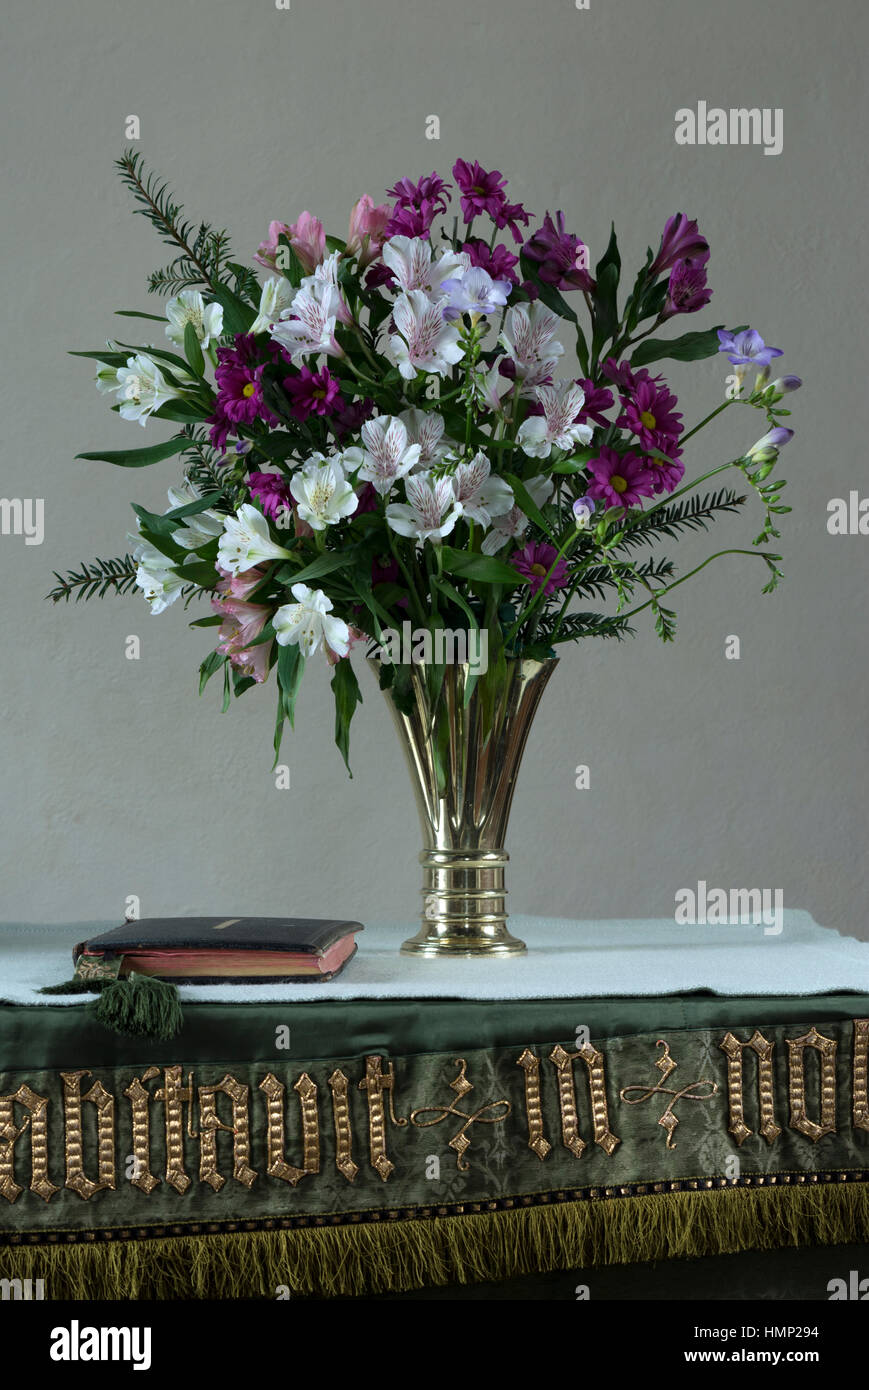 A Flower Arrangement On A Church Altar Stock Photo Alamy